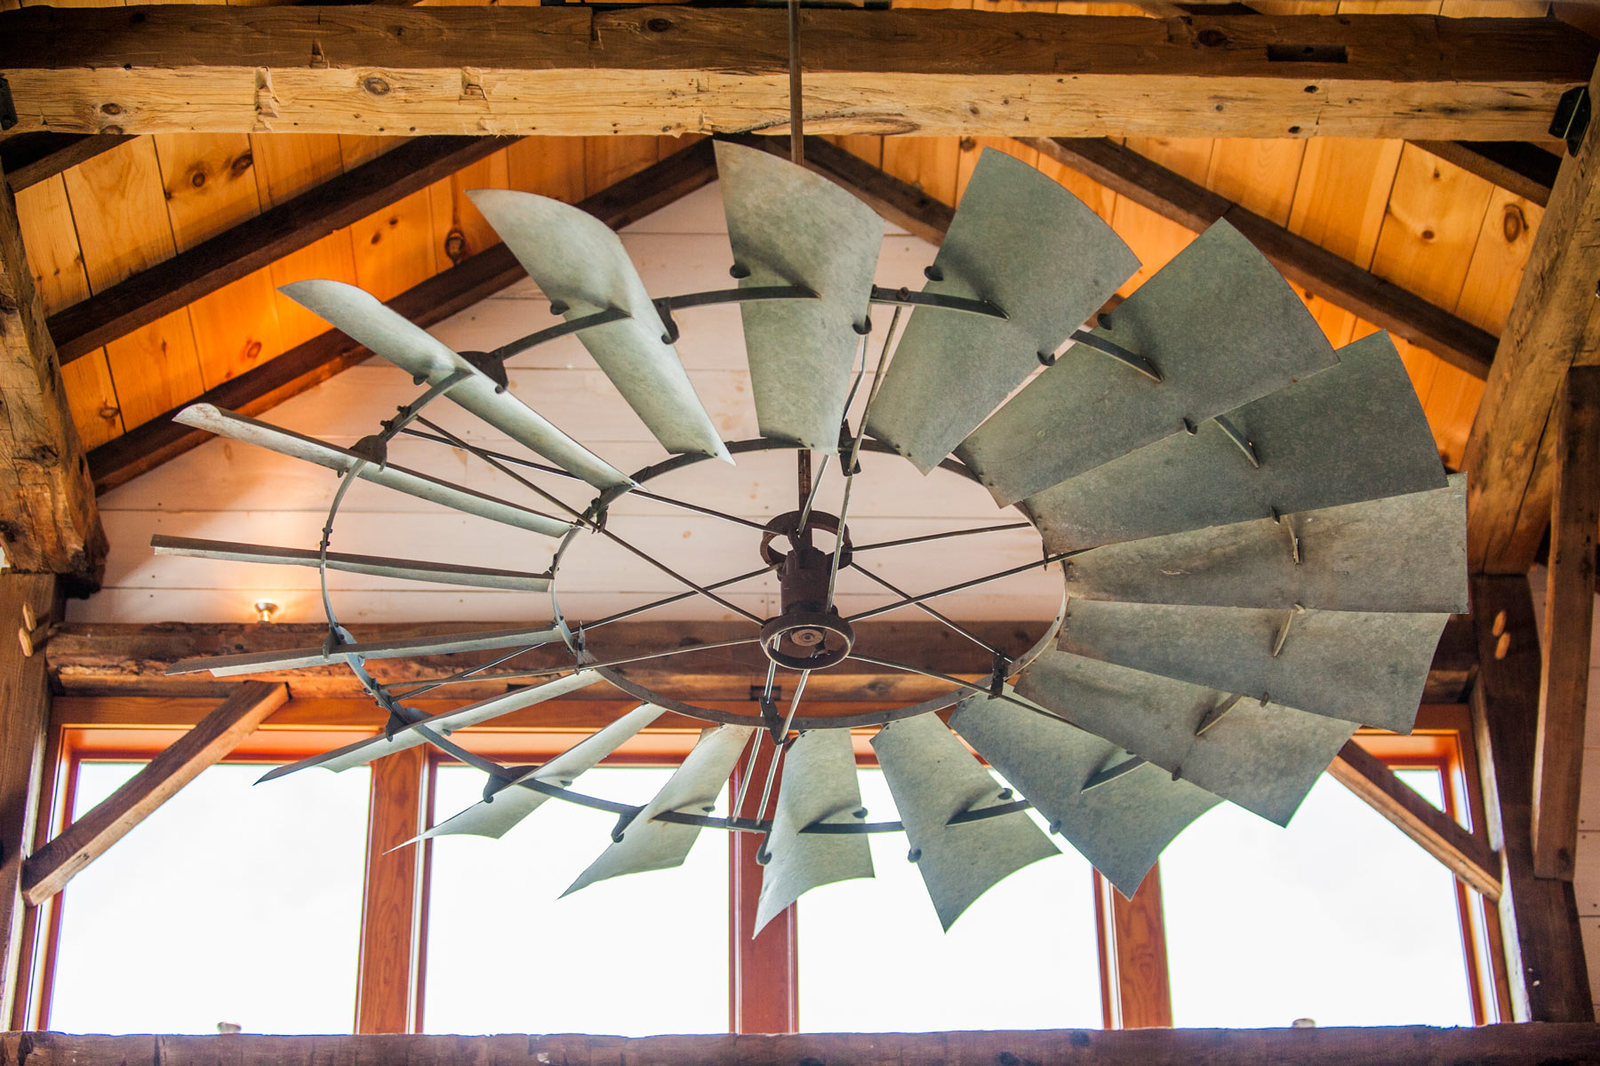 Interior Ceiling Fans Decorating With Ceiling Fans Interior Design Ideas That Work